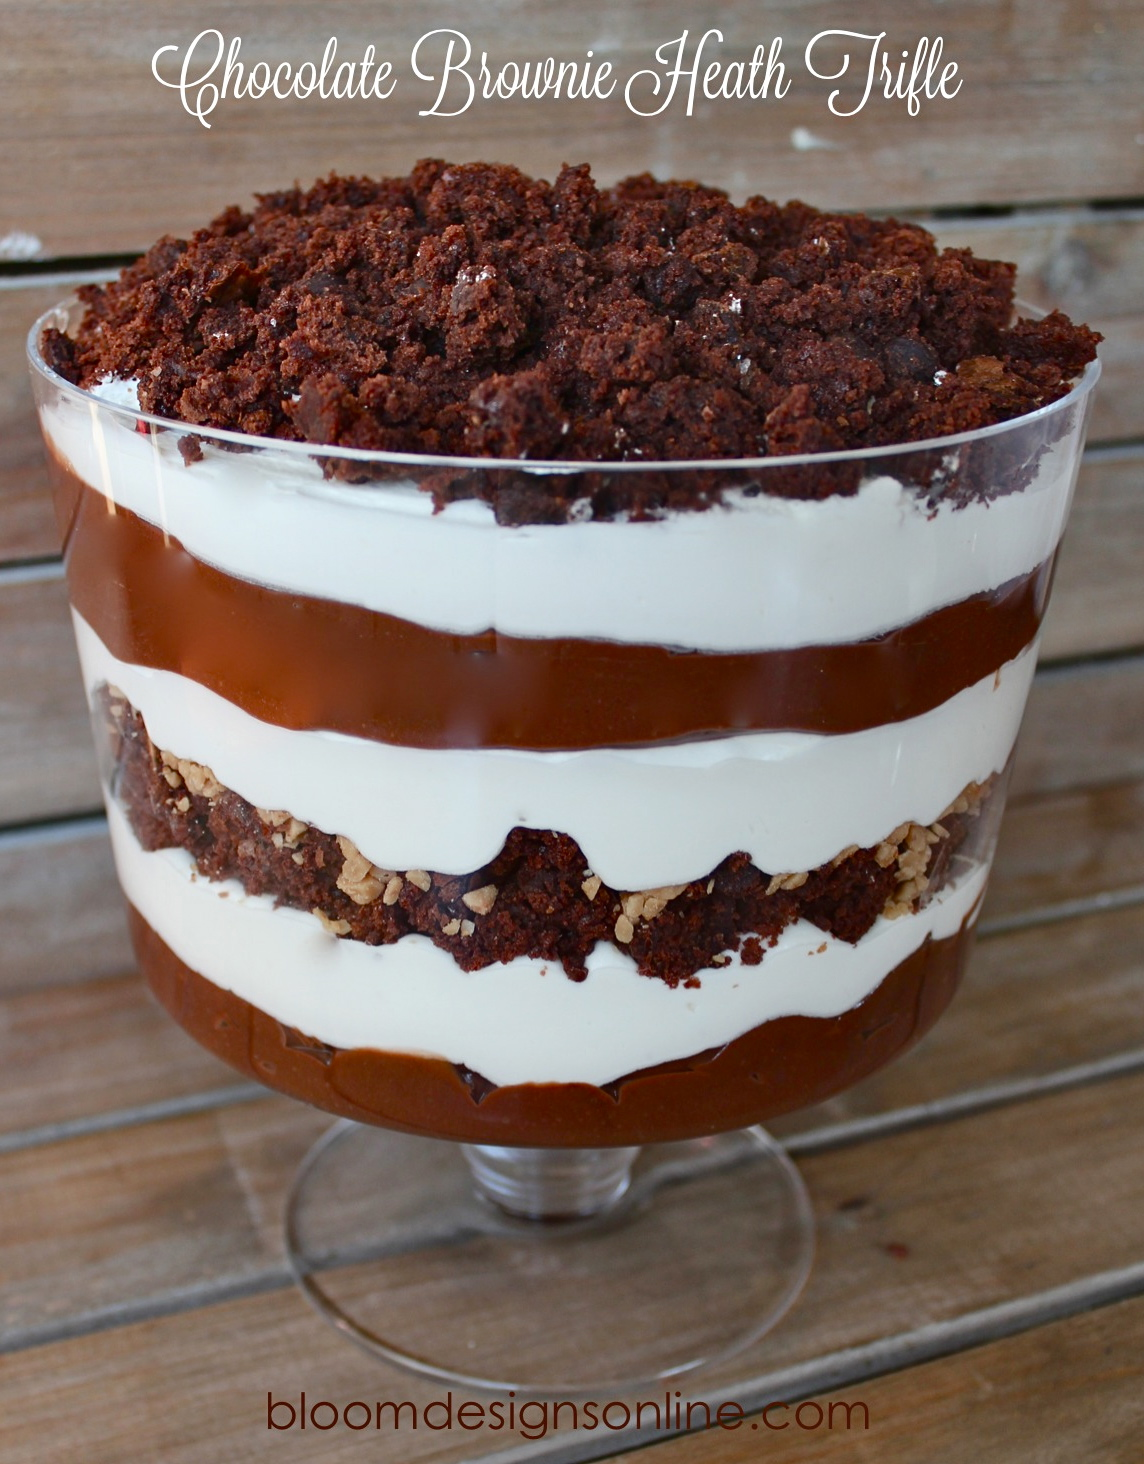 Chocolate Brownie Heath Trifle - Bloom Designs